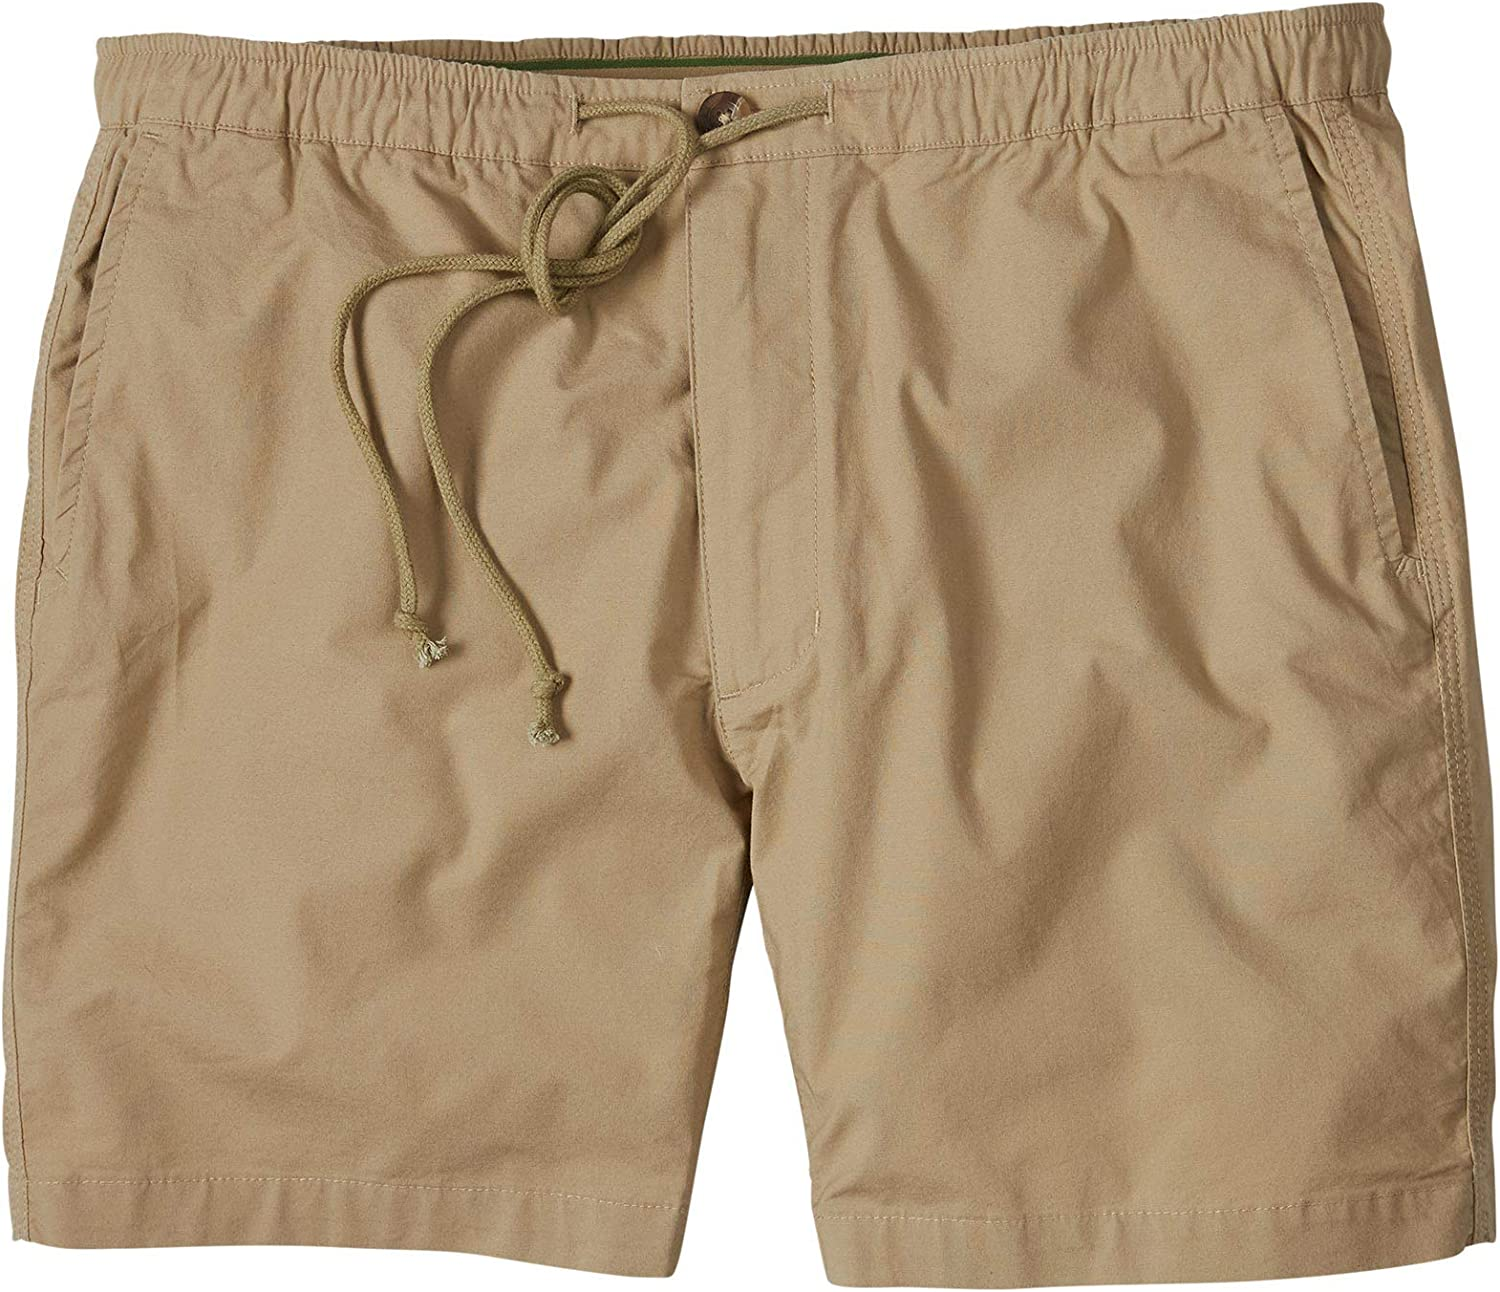 Mountain Khakis Sandbar Shorts Slim Fit